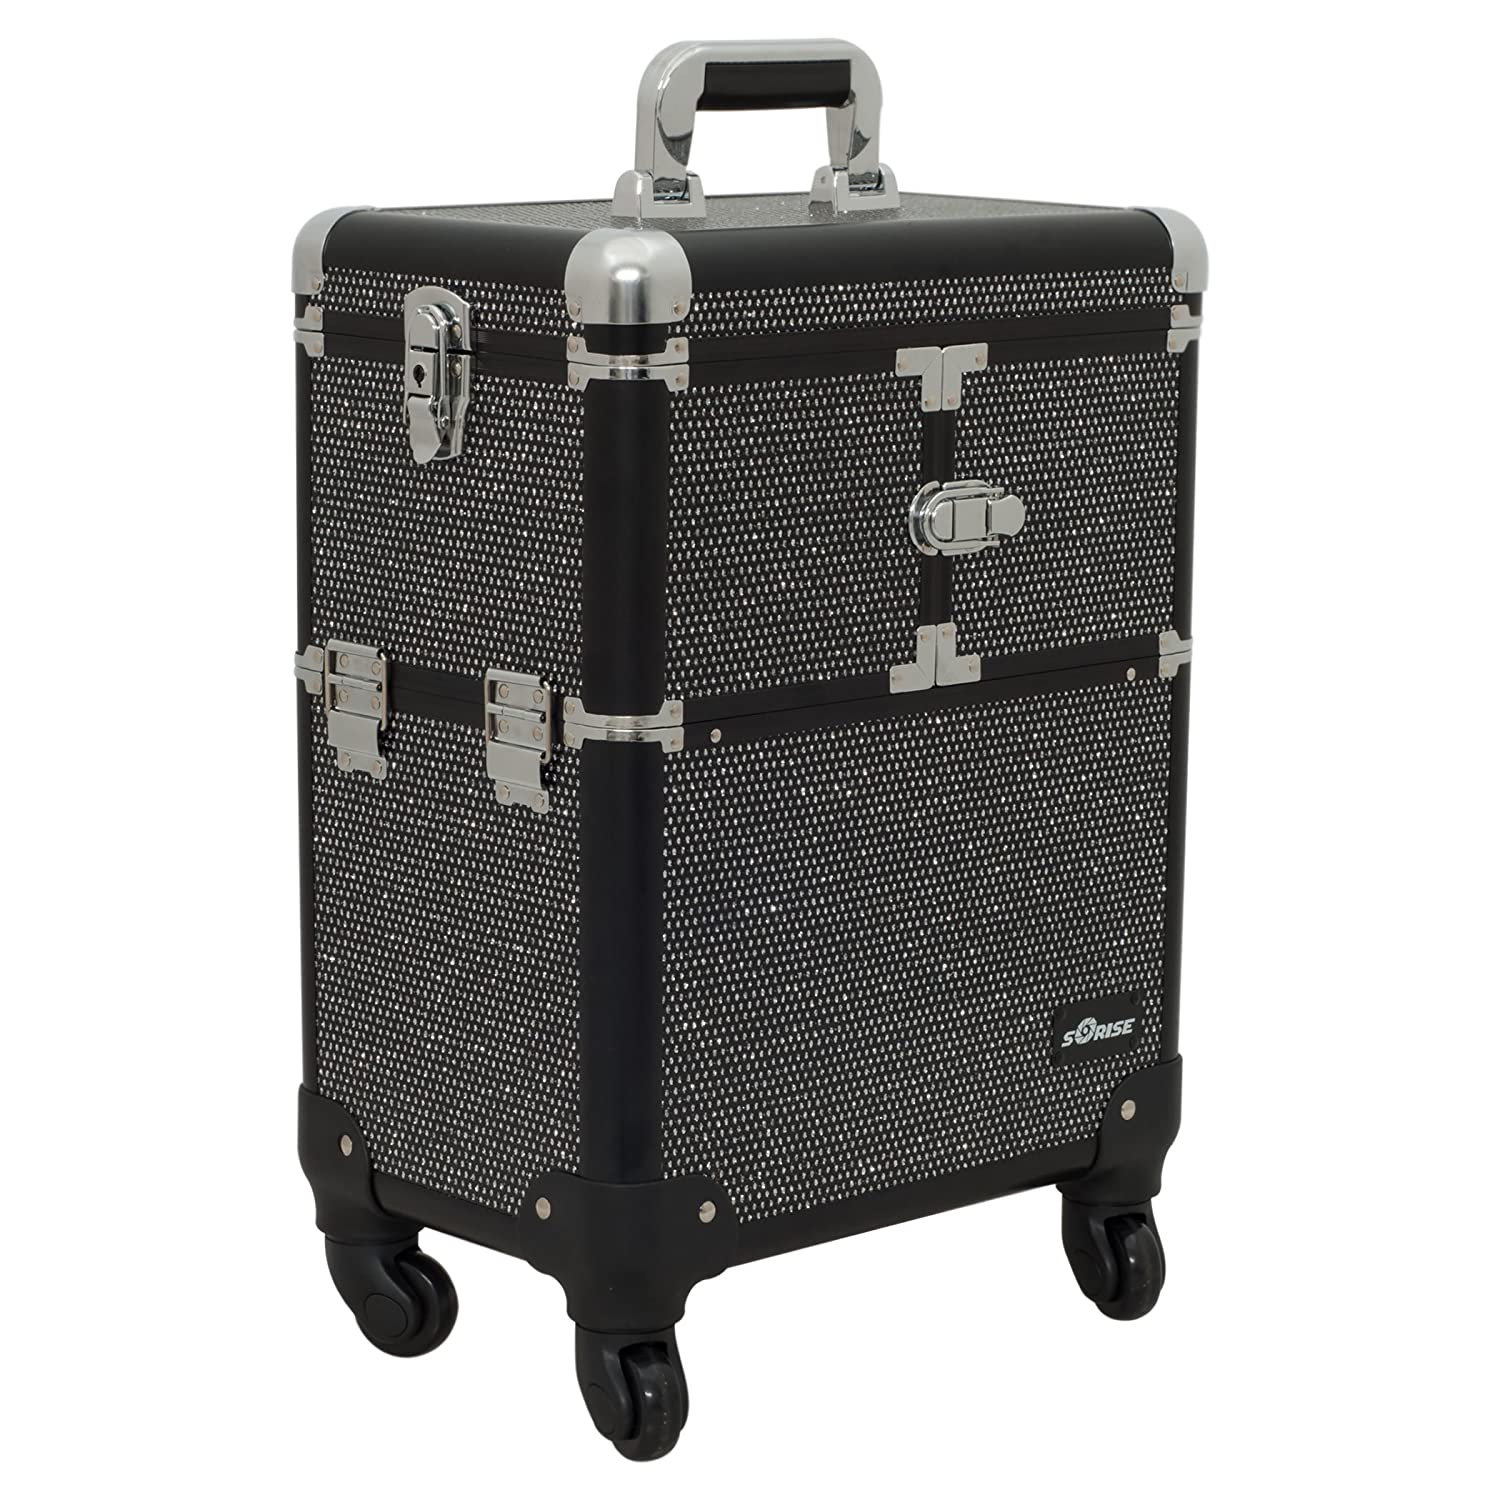 Sunrise e6304 Professional 4 Wheels Makeup Rolling Train Case Organizer 6 Trays Dividers Roomy Space Krystal Black E6304KLAB